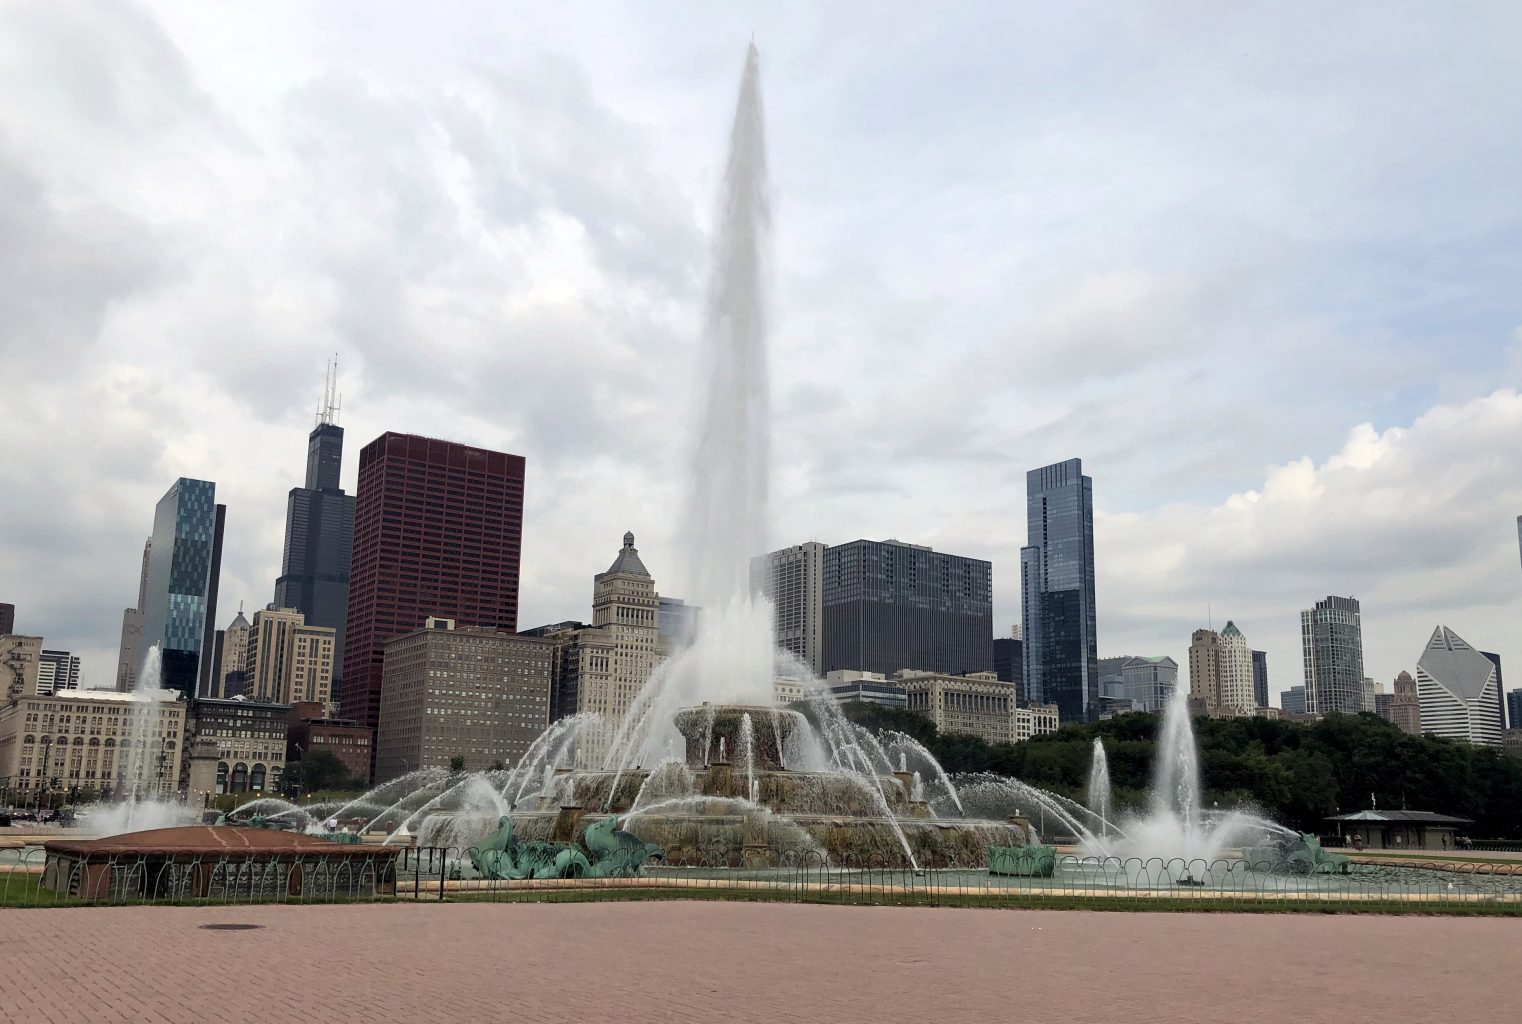 Buckingham Fountain. qué ver y hacer en Chicago